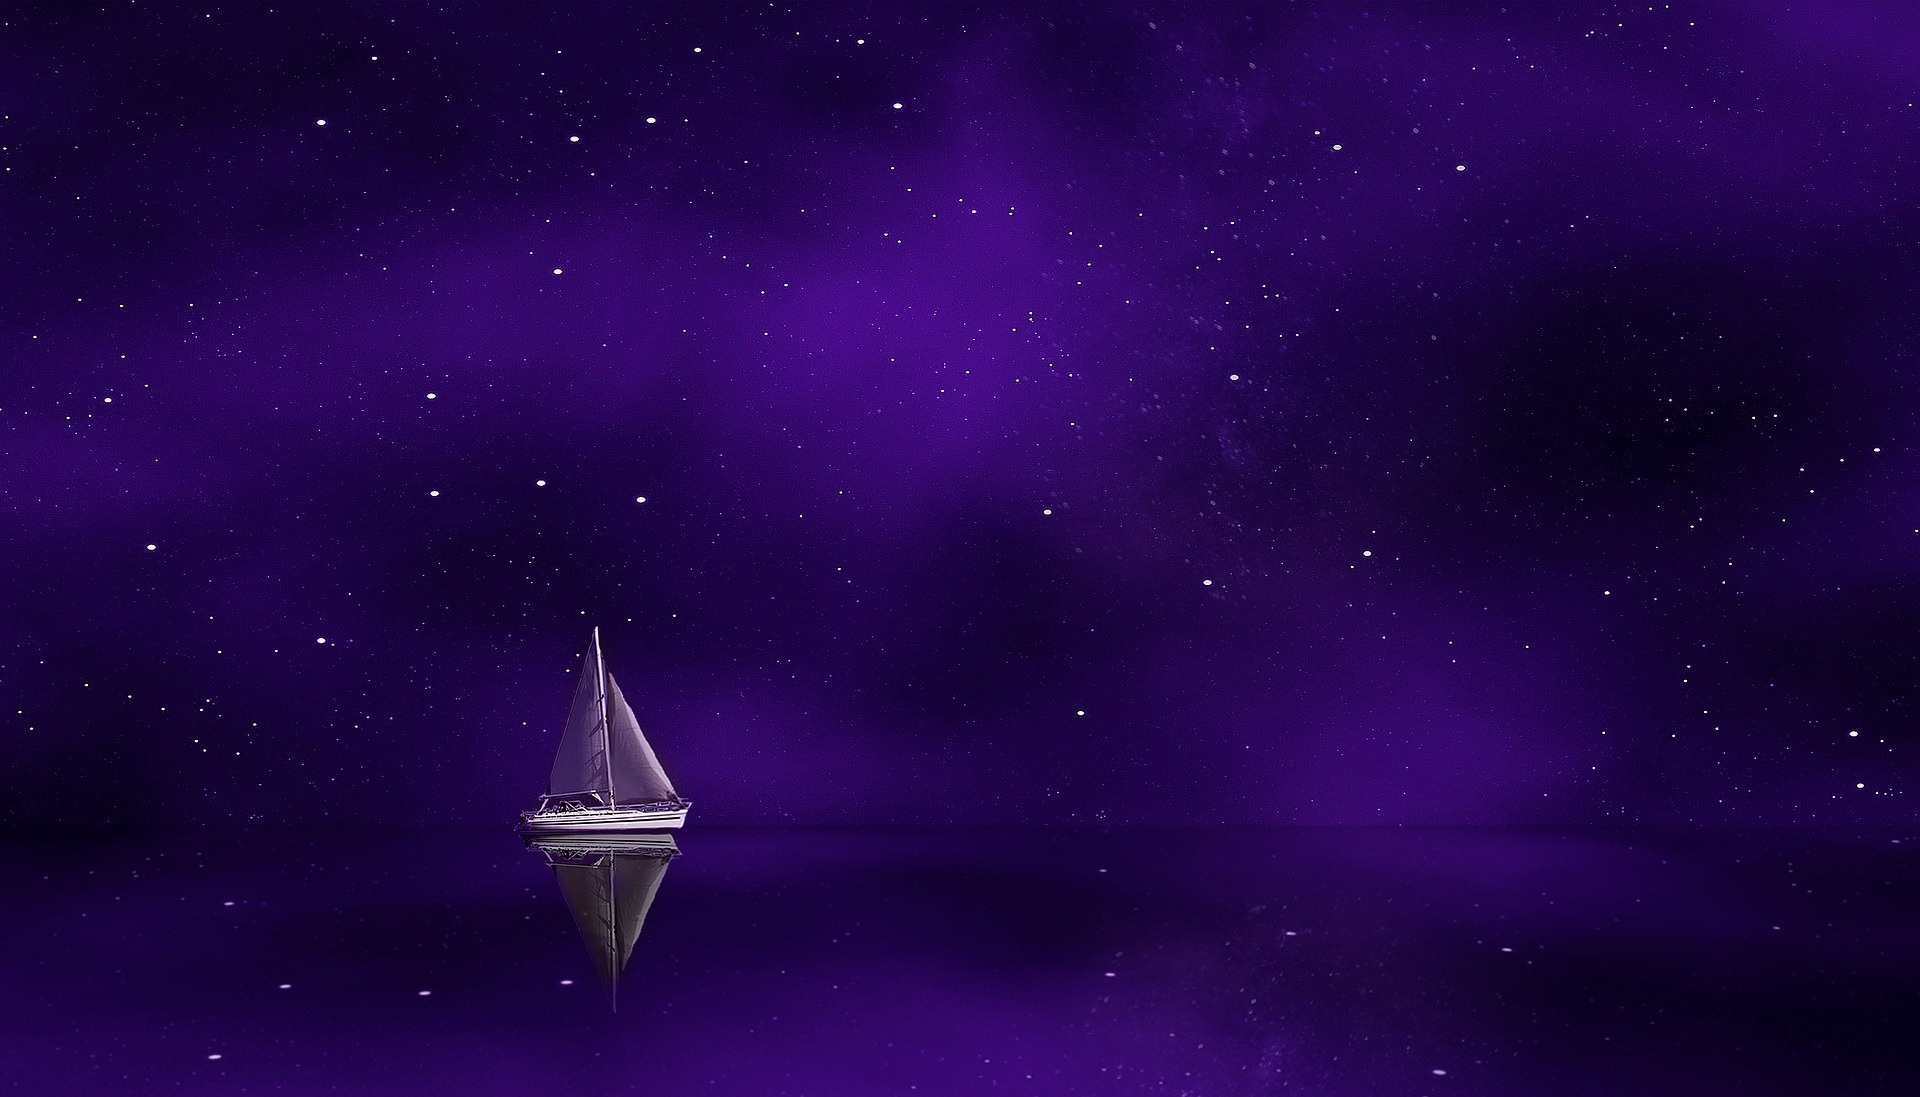 Sailboat_under_purple_sky